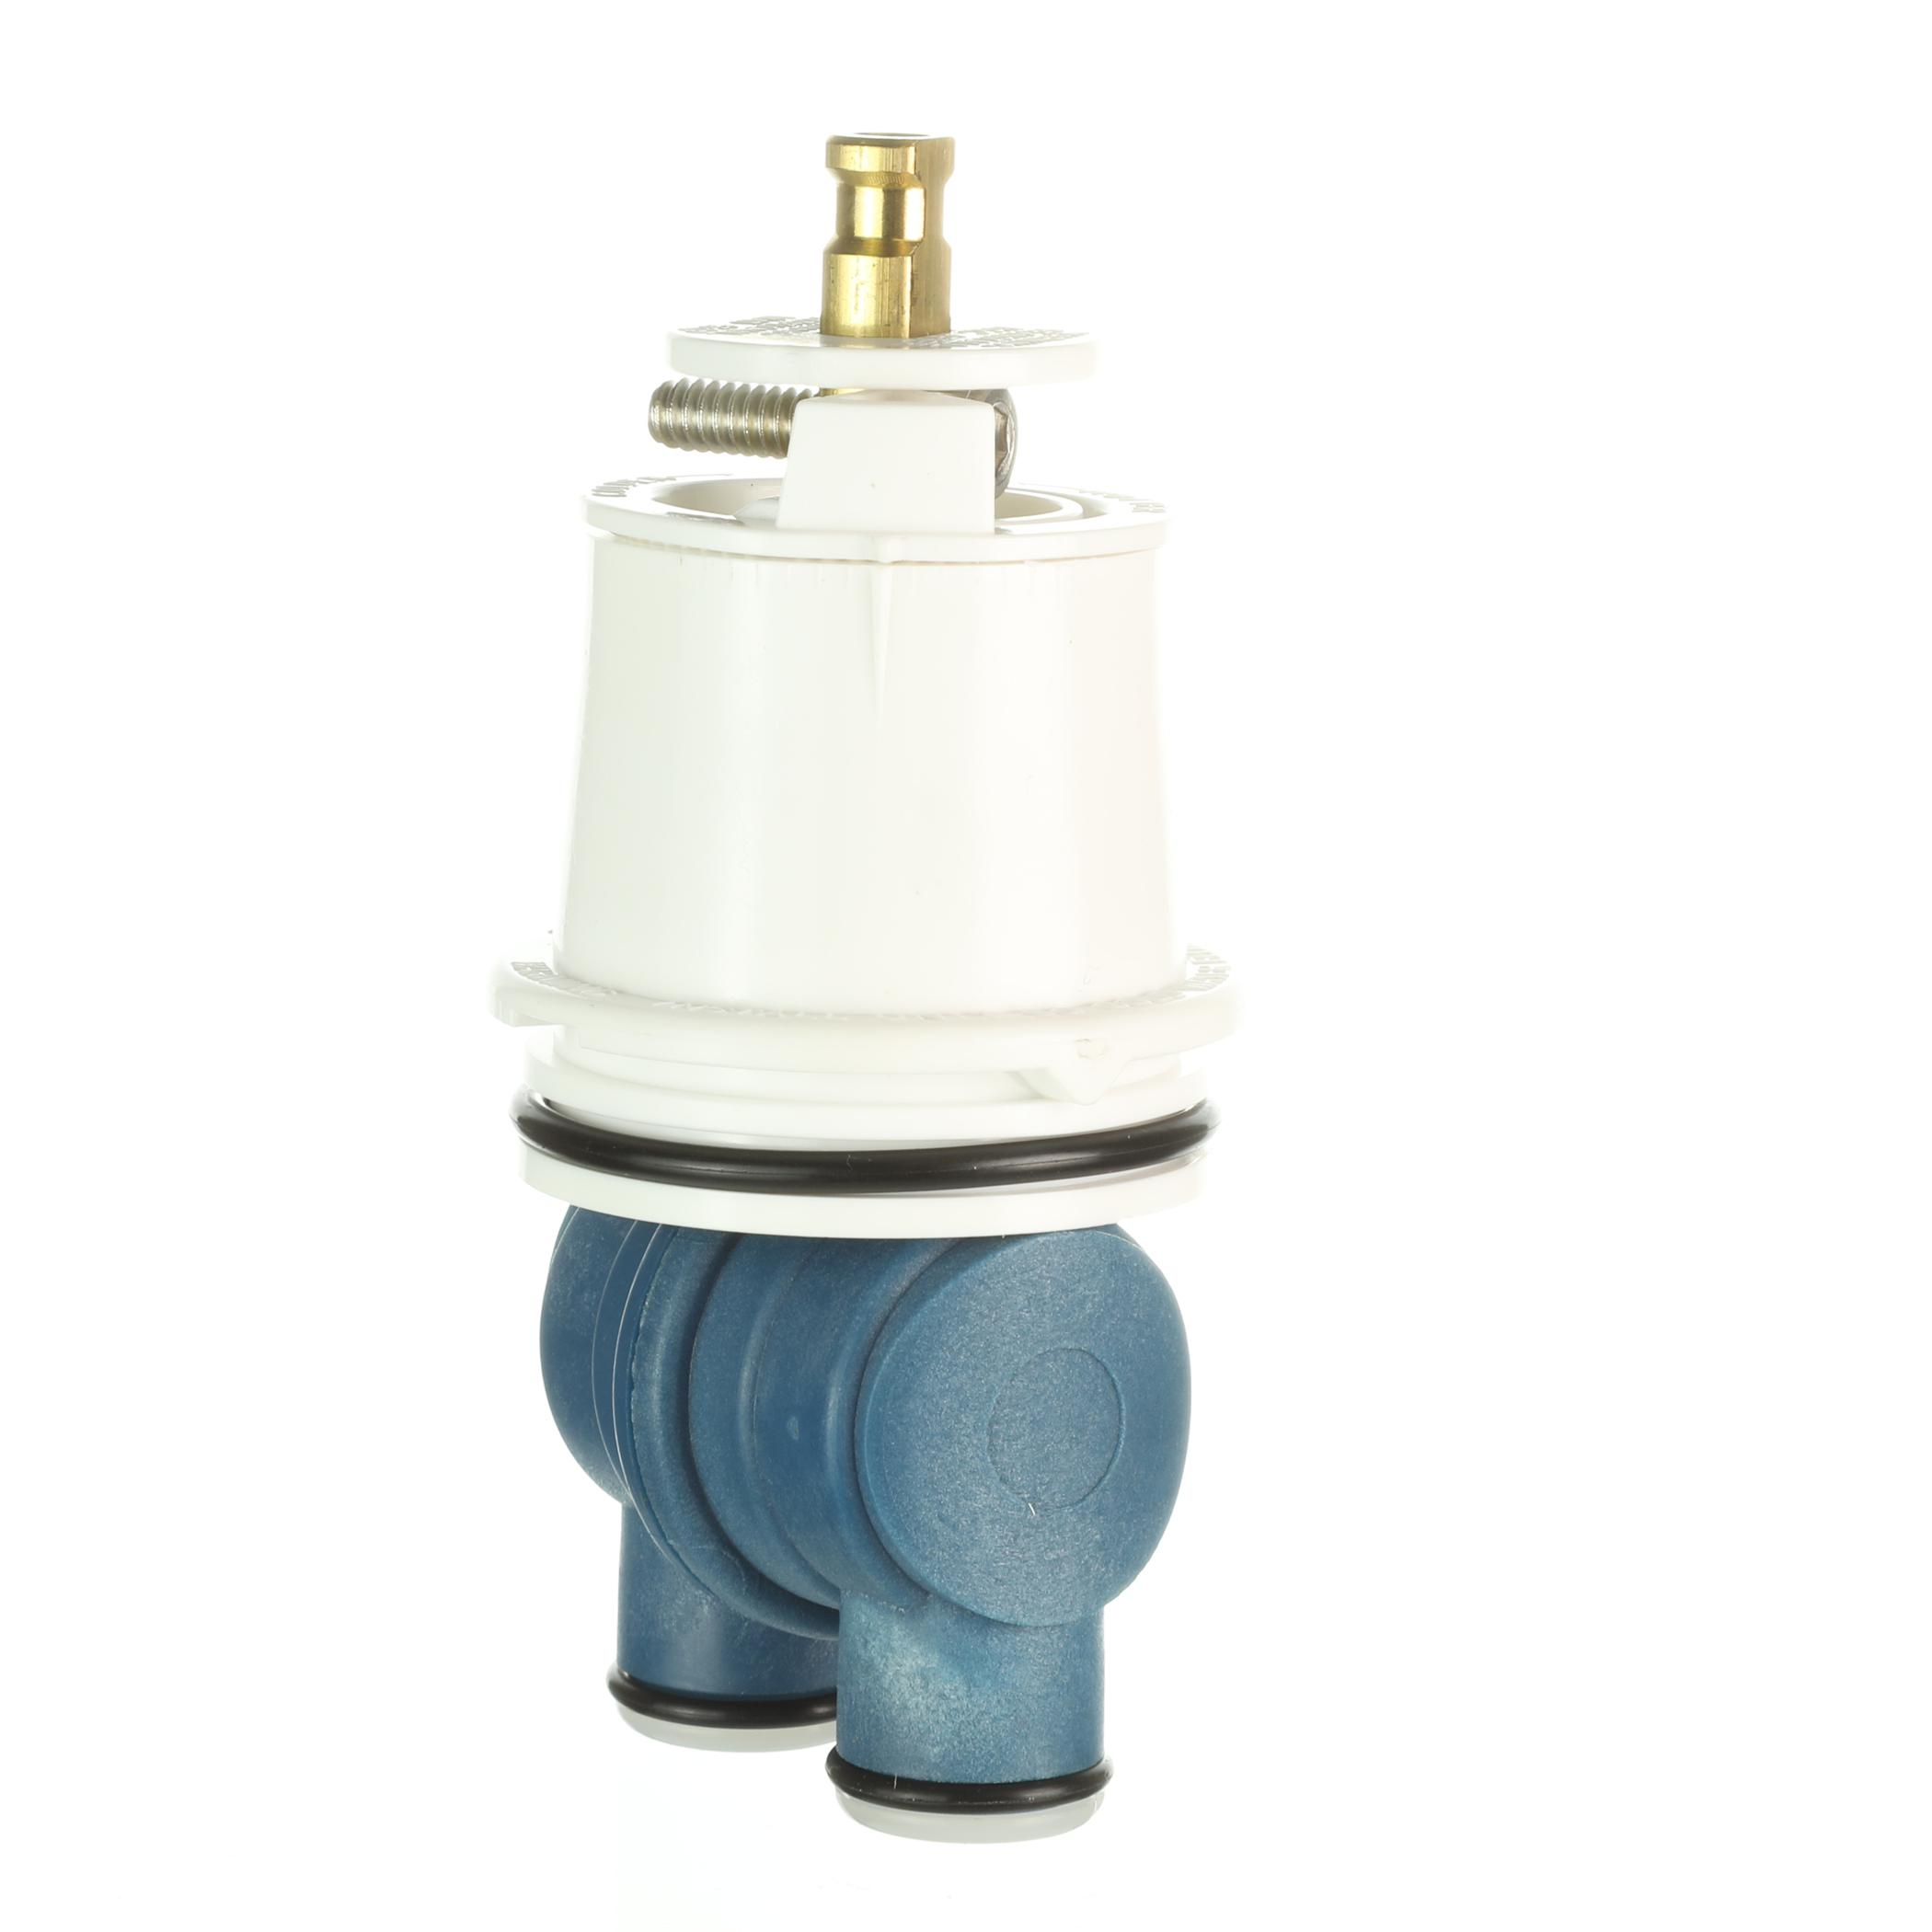 Replacement Cartridge For Delta Monitor Single Lever Faucets